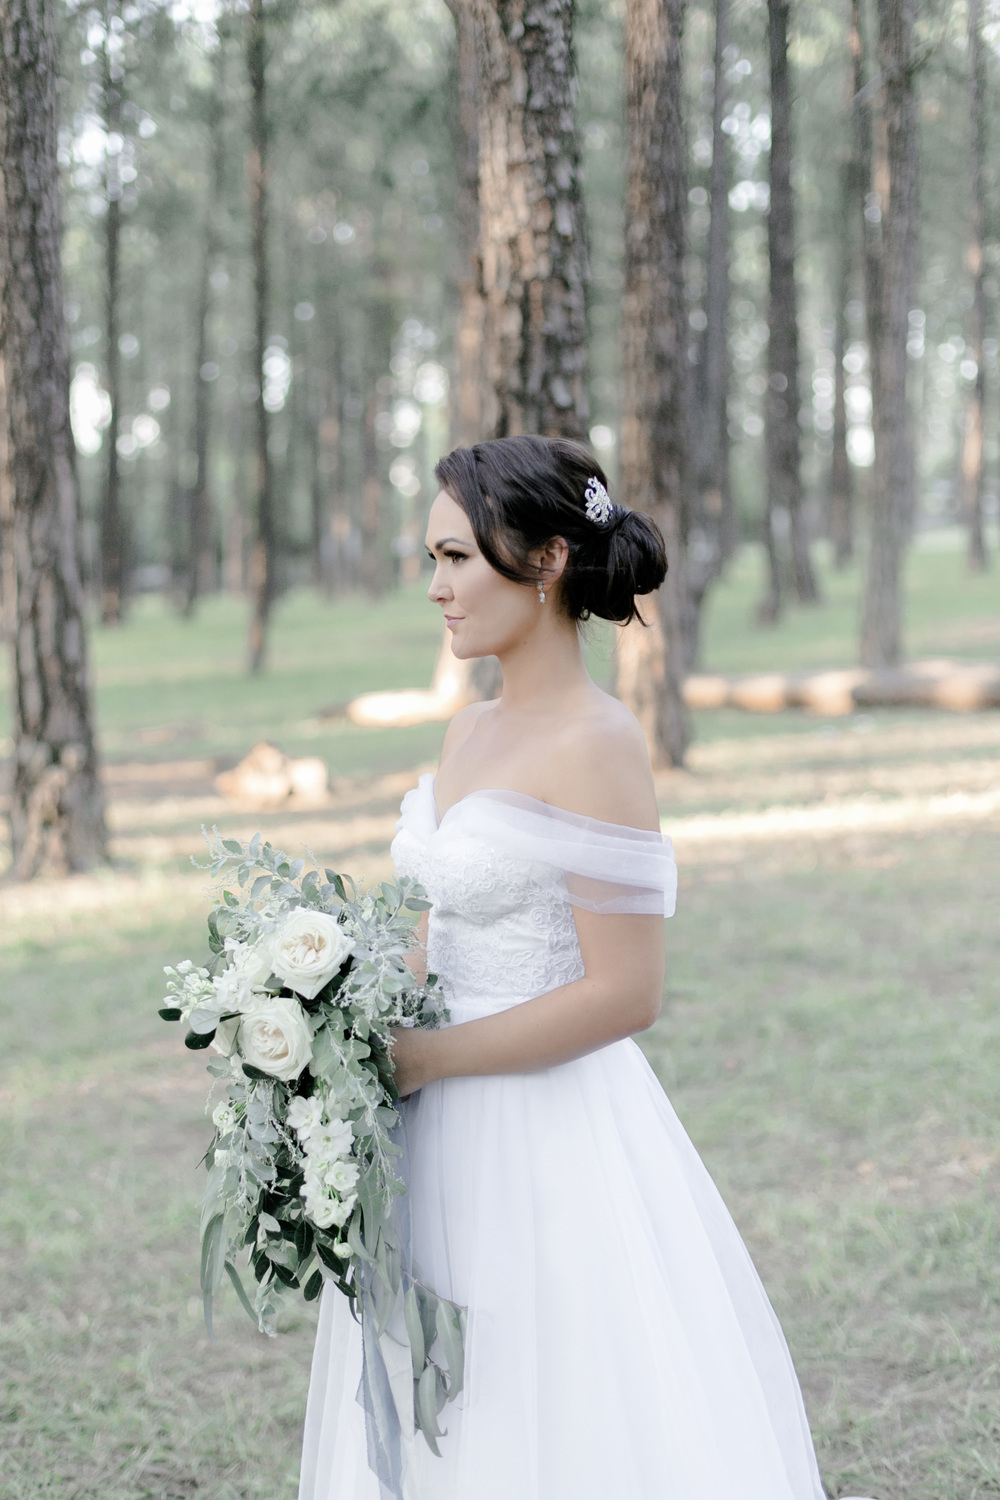 long Meadow johannesburg wedding venue photographer_060.jpg